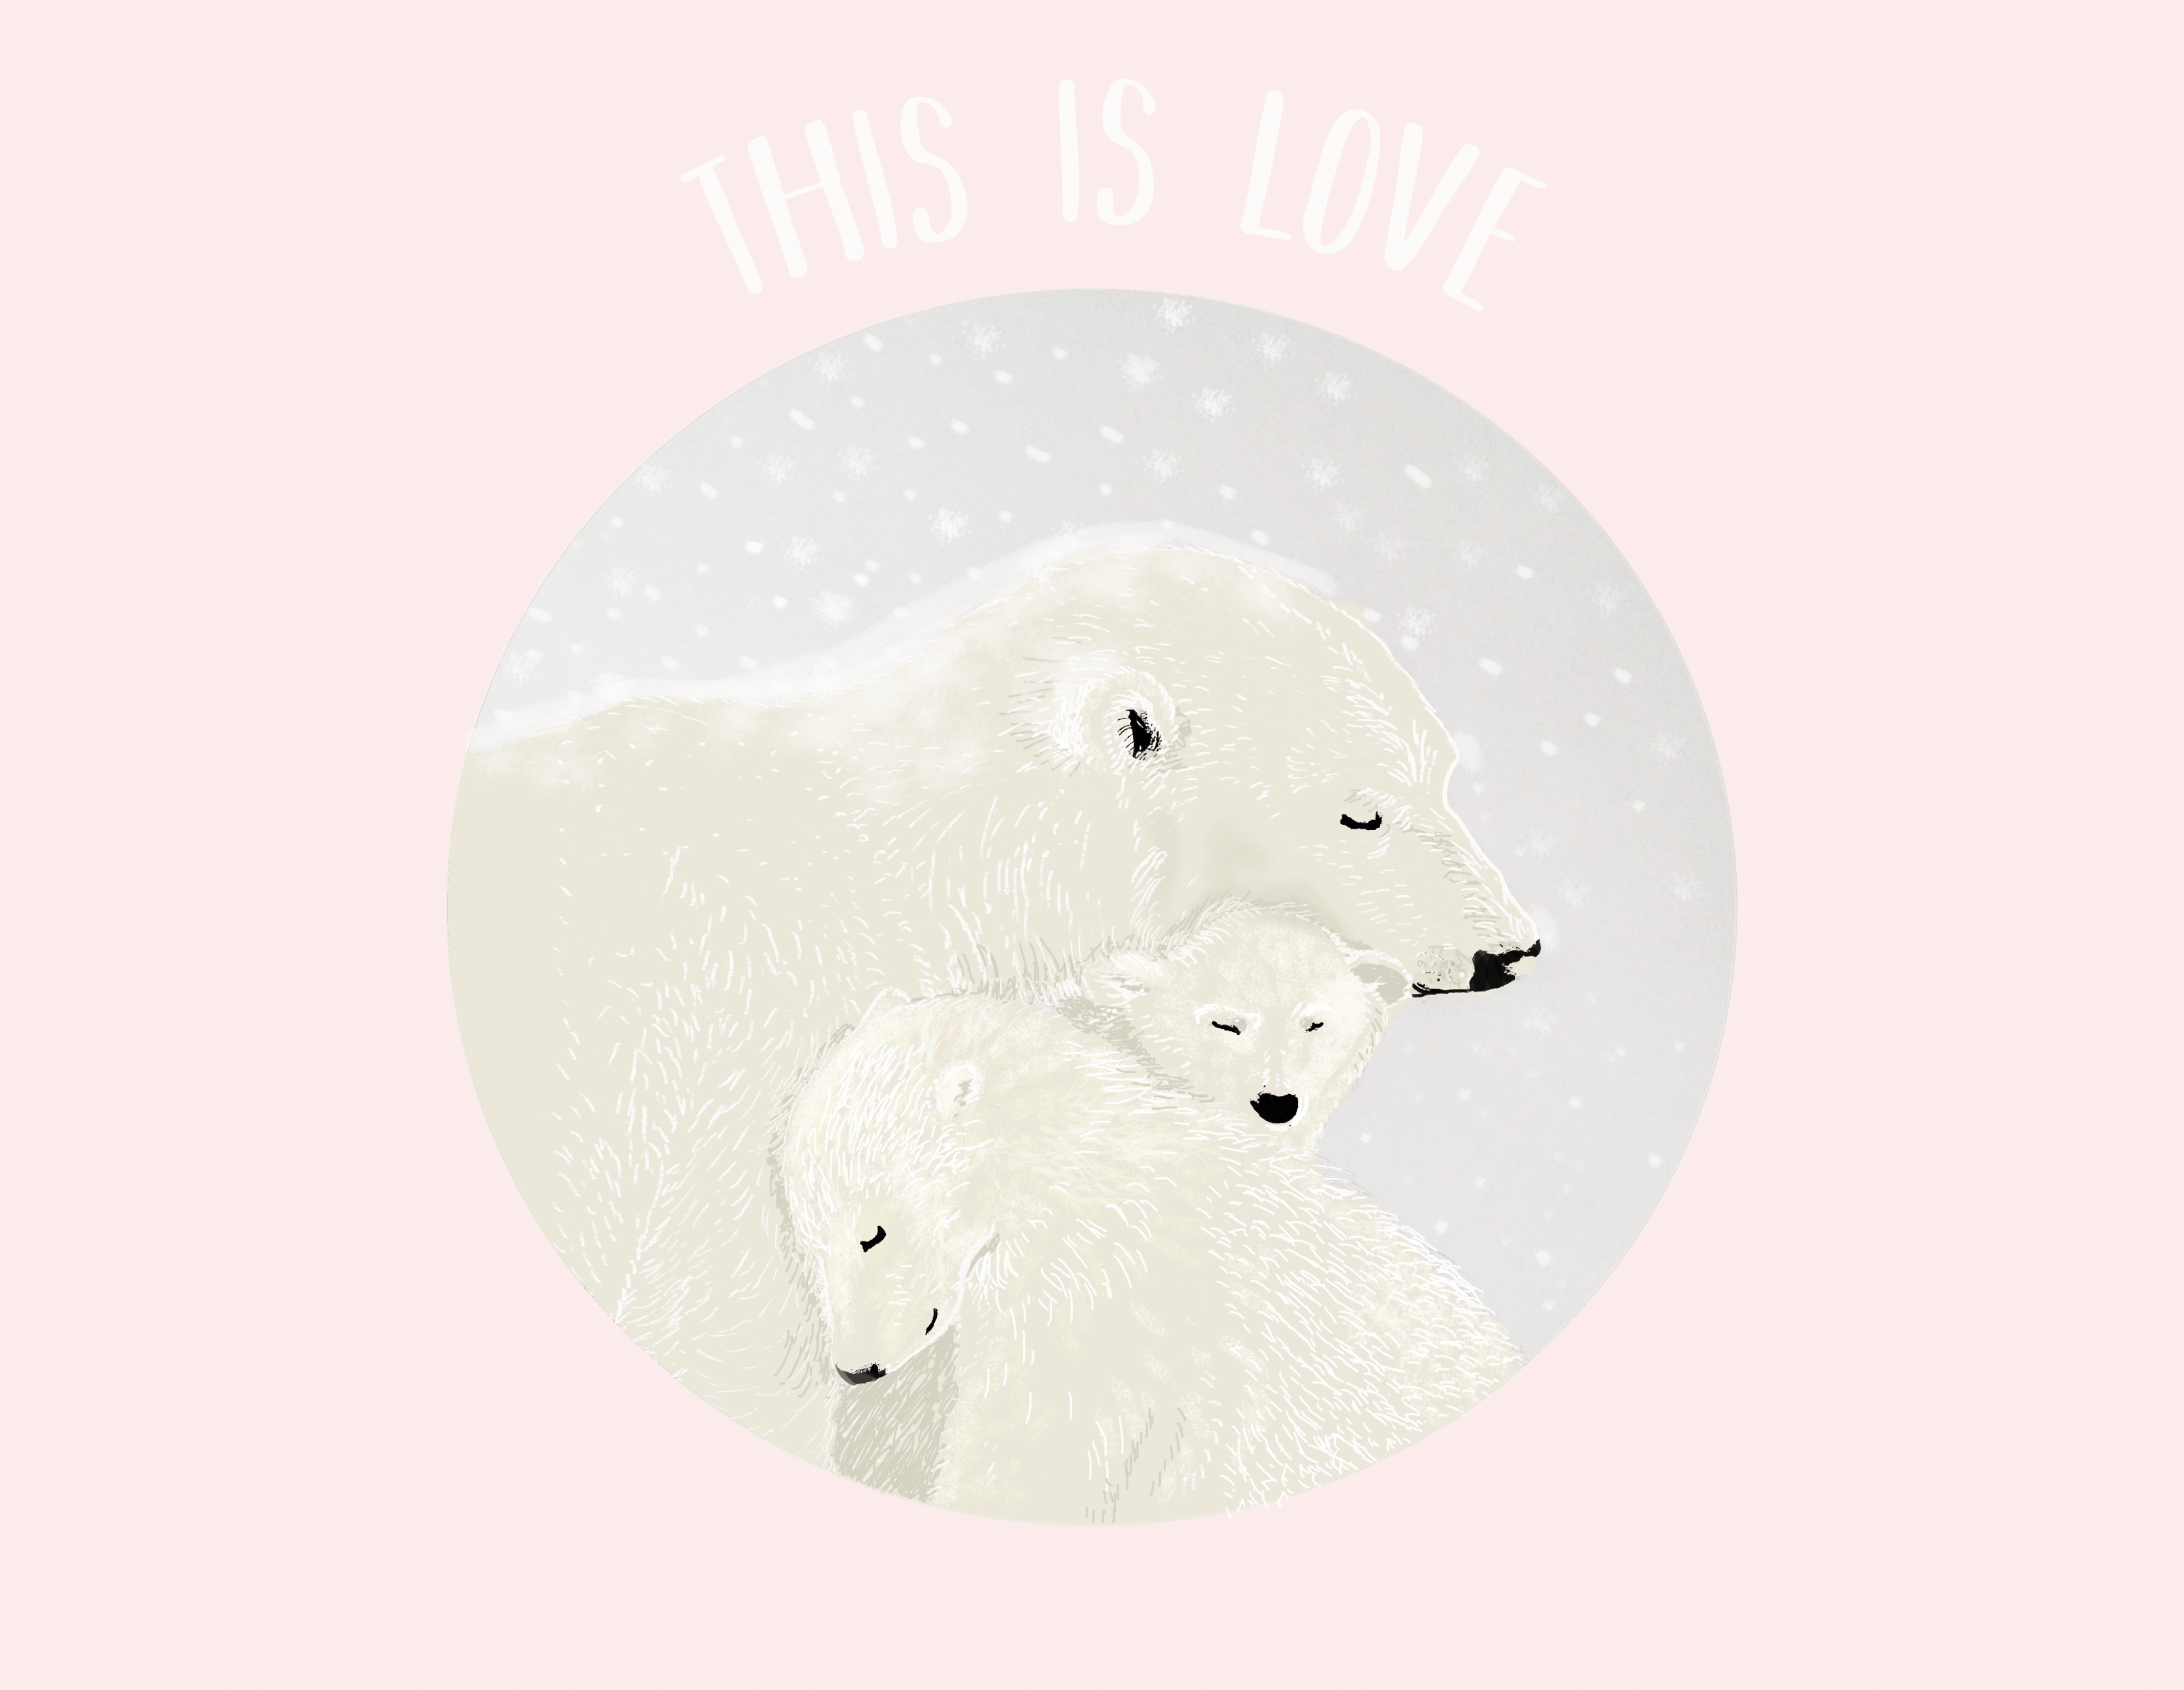 Mother_bear_wth_babies_from_This_is_love_collection_cricristudio